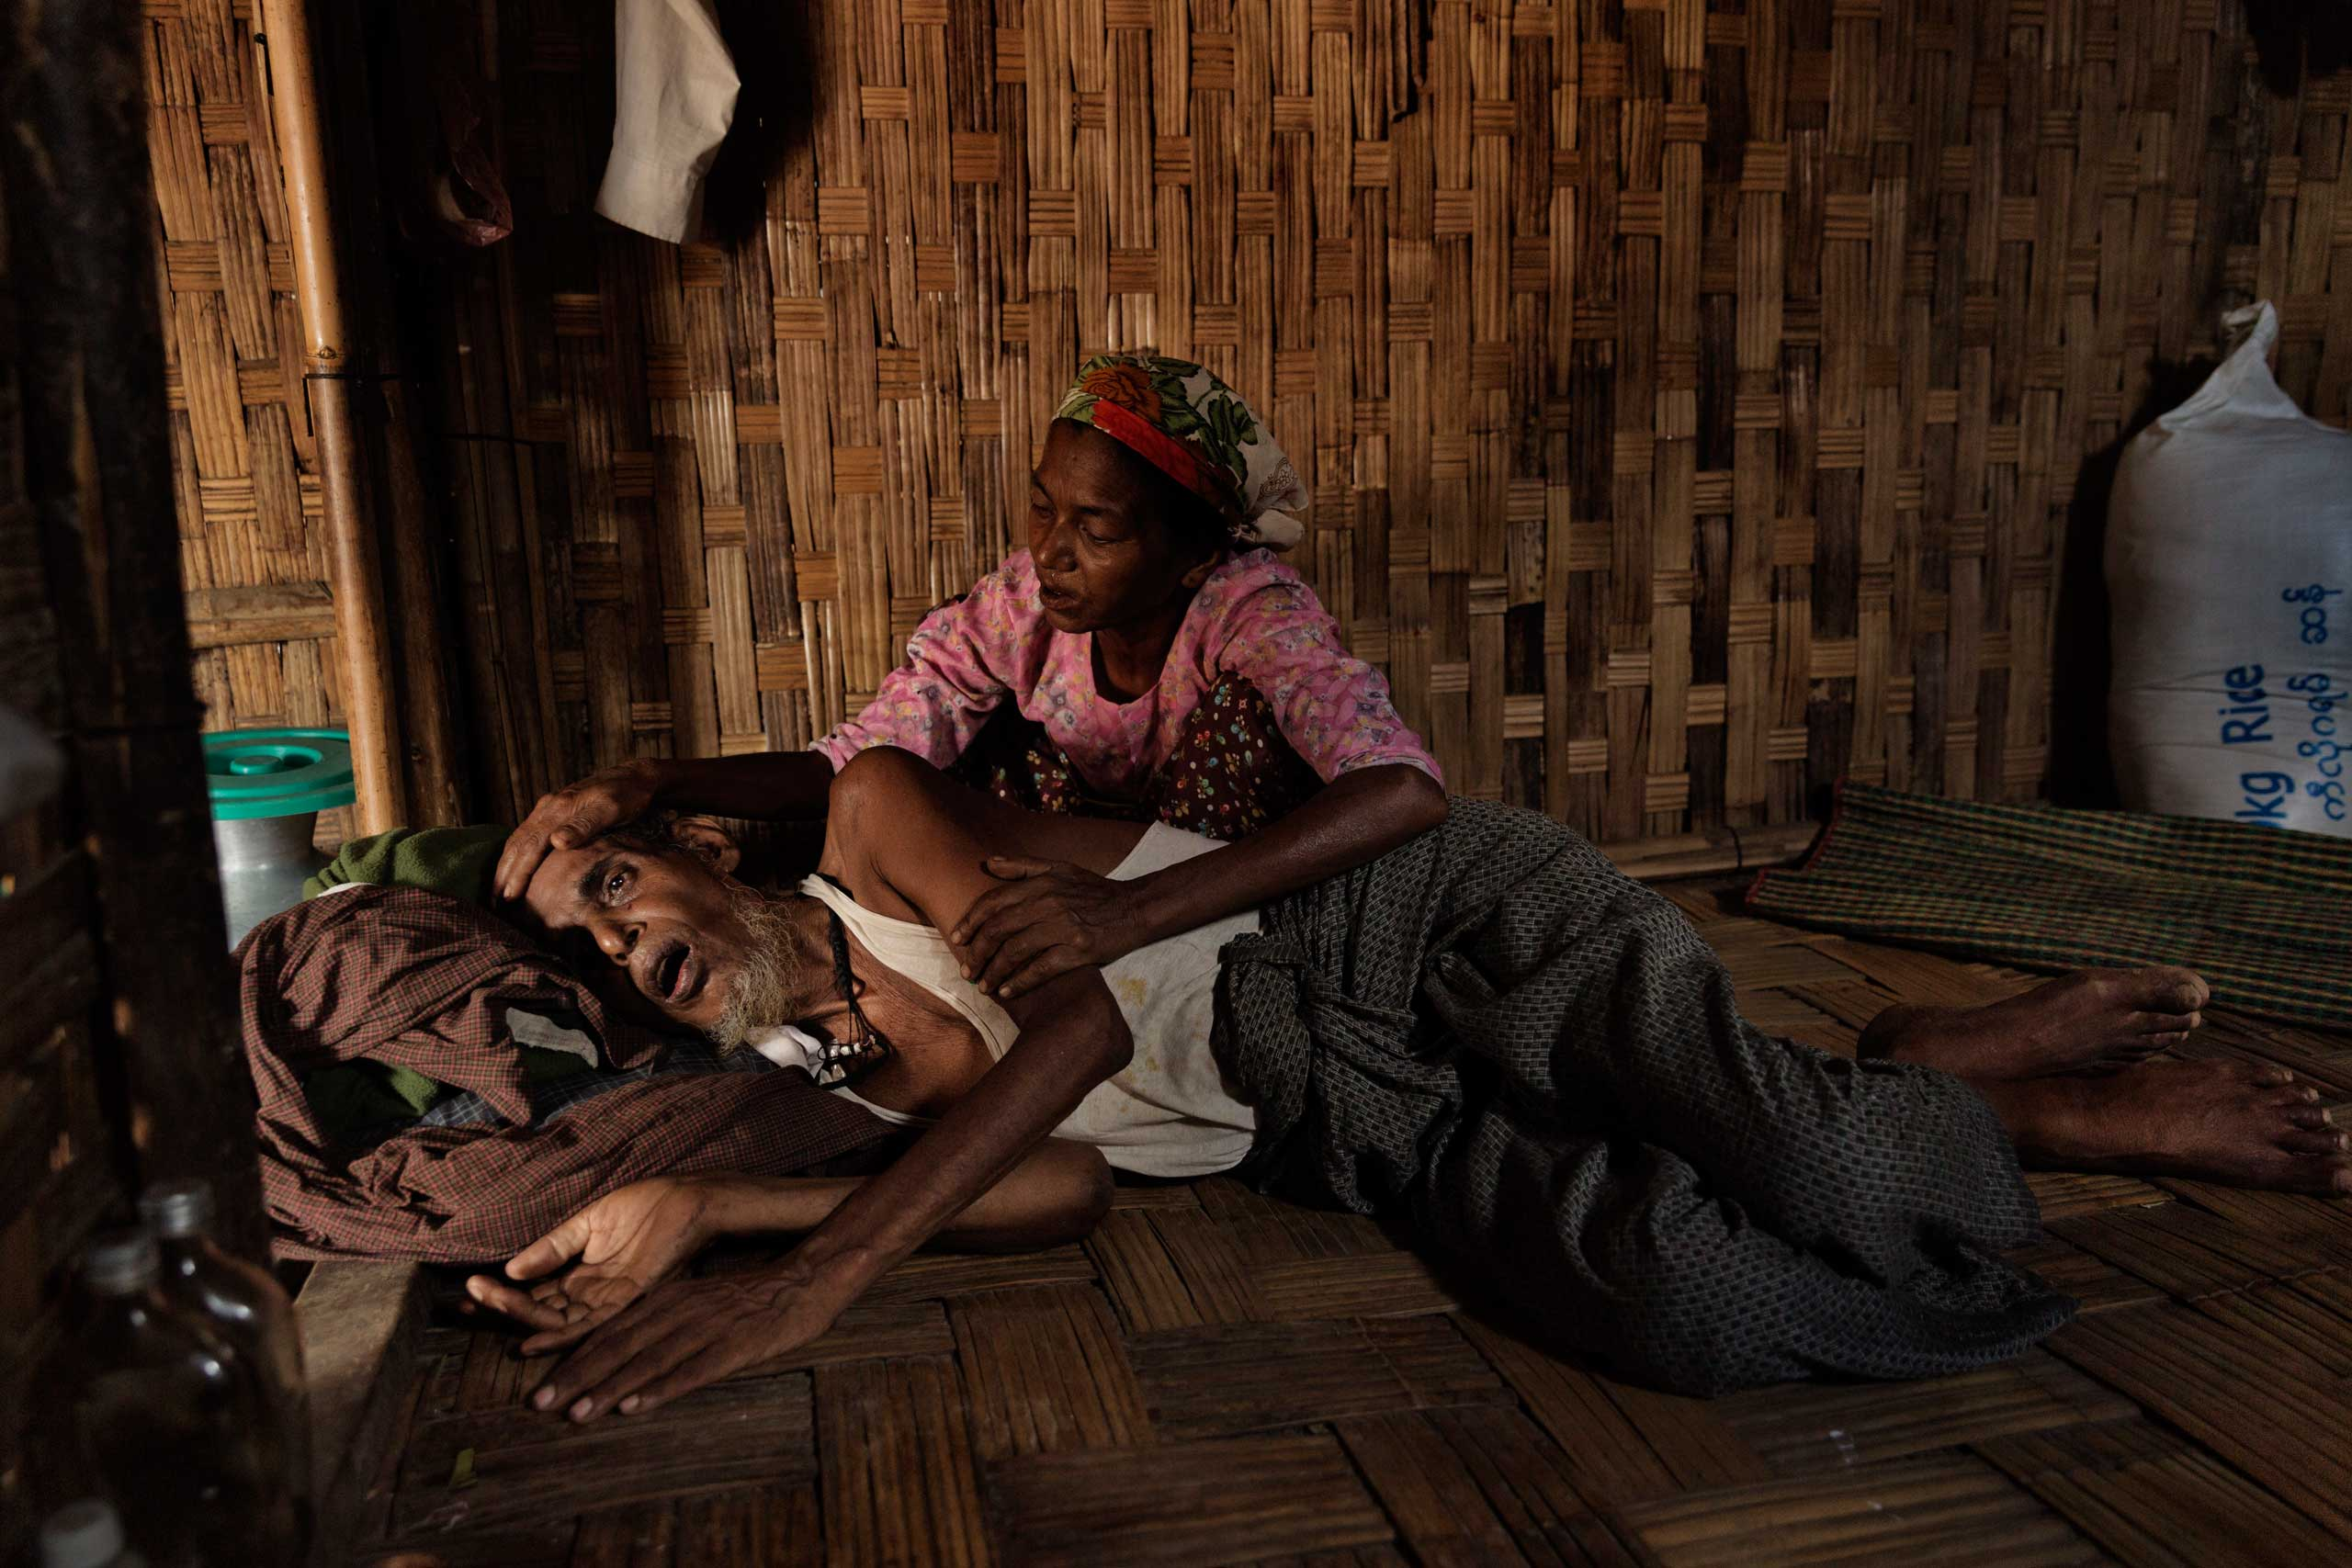 In Burma, more than 140,000 minority Rohingya Muslims have been forced to live in camps, where disease and despair have taken root.                               Here, Abdul Kadir, 65, who has a severe stomach ailment and malnutrition, is cared for by his wife in one of the camps, June 9, 2014.